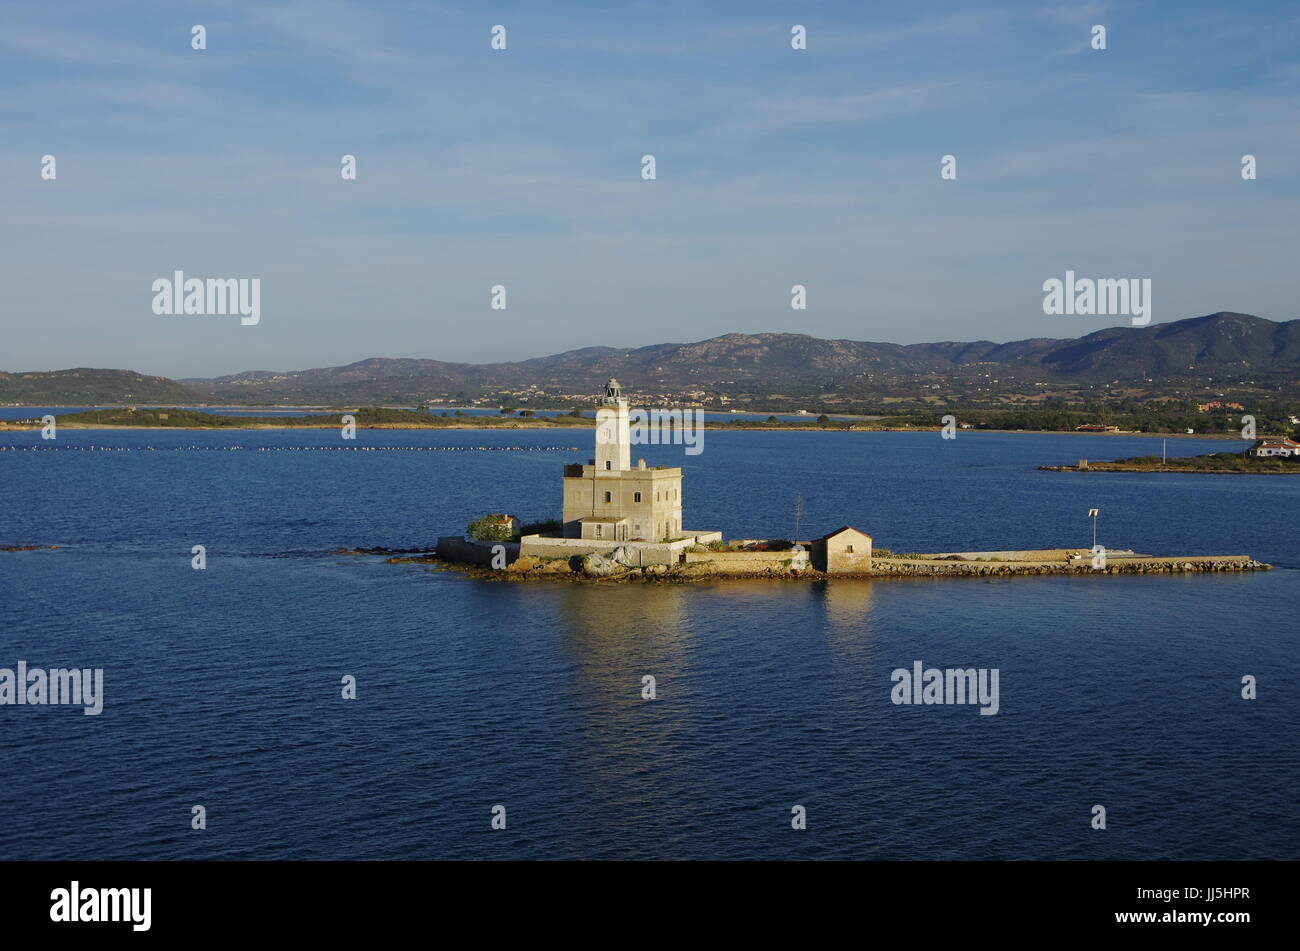 The lighthouse at the entrance of Olbia's gulf - Stock Image